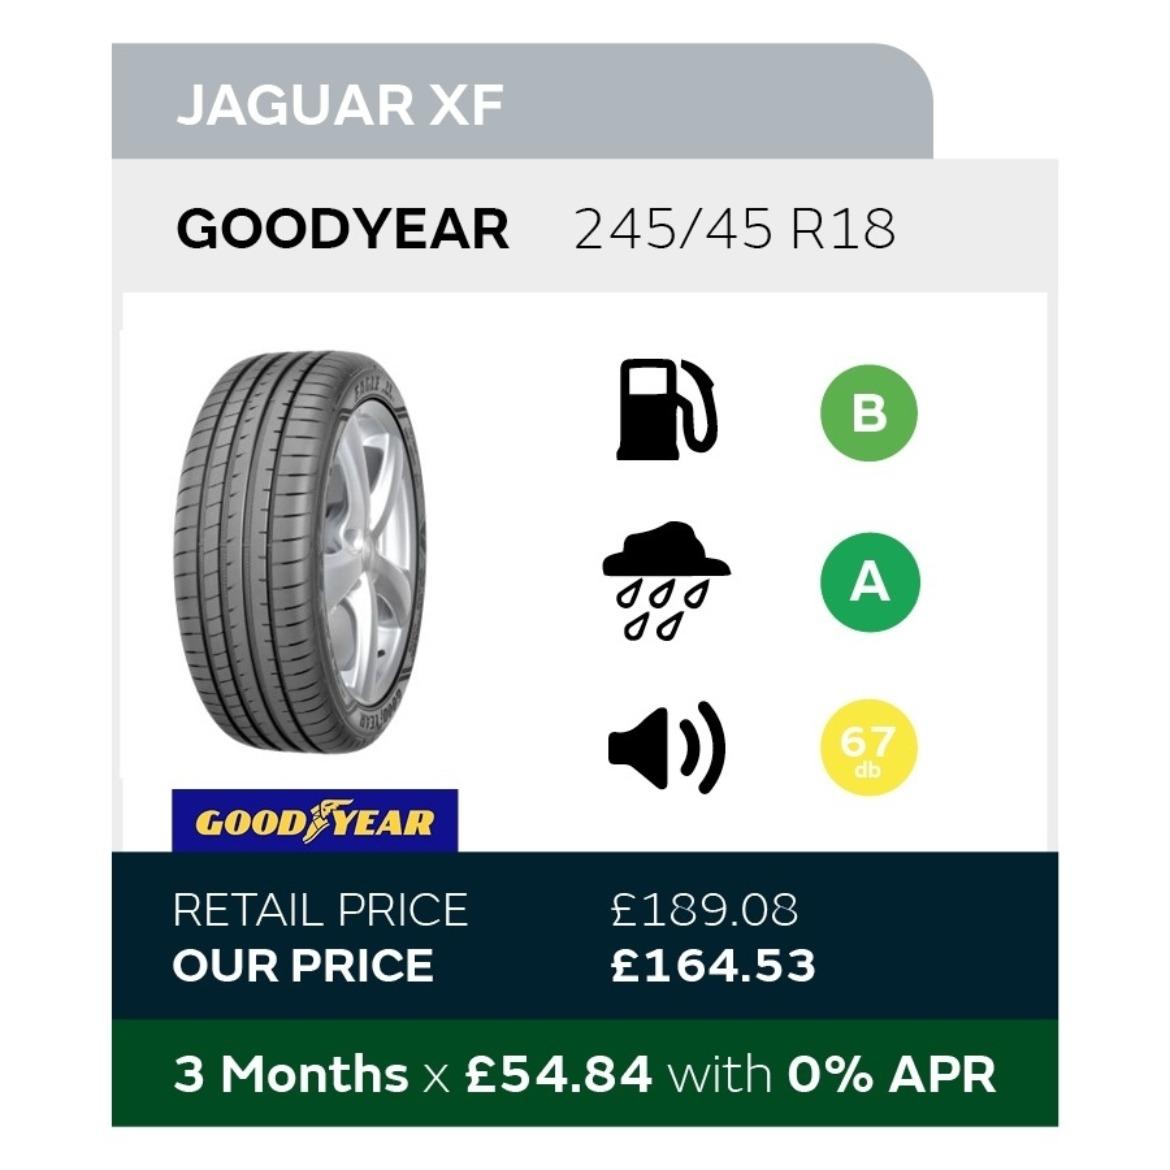 Jaguar XF Tyre Offer